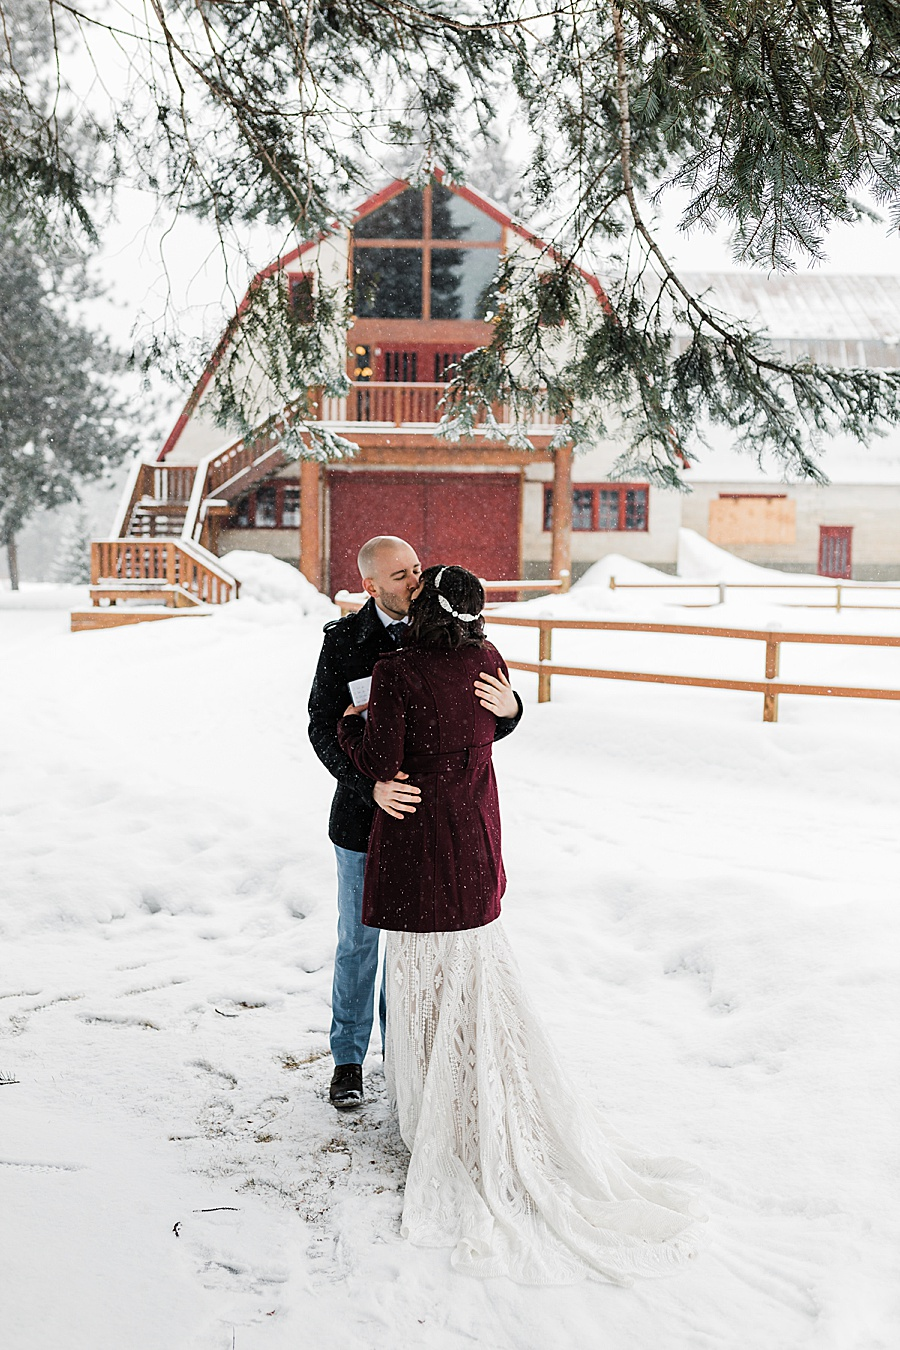 Leavenworth Winter Wedding at Pine River Ranch by Outdoor Wedding Photographer Amy Galbraith